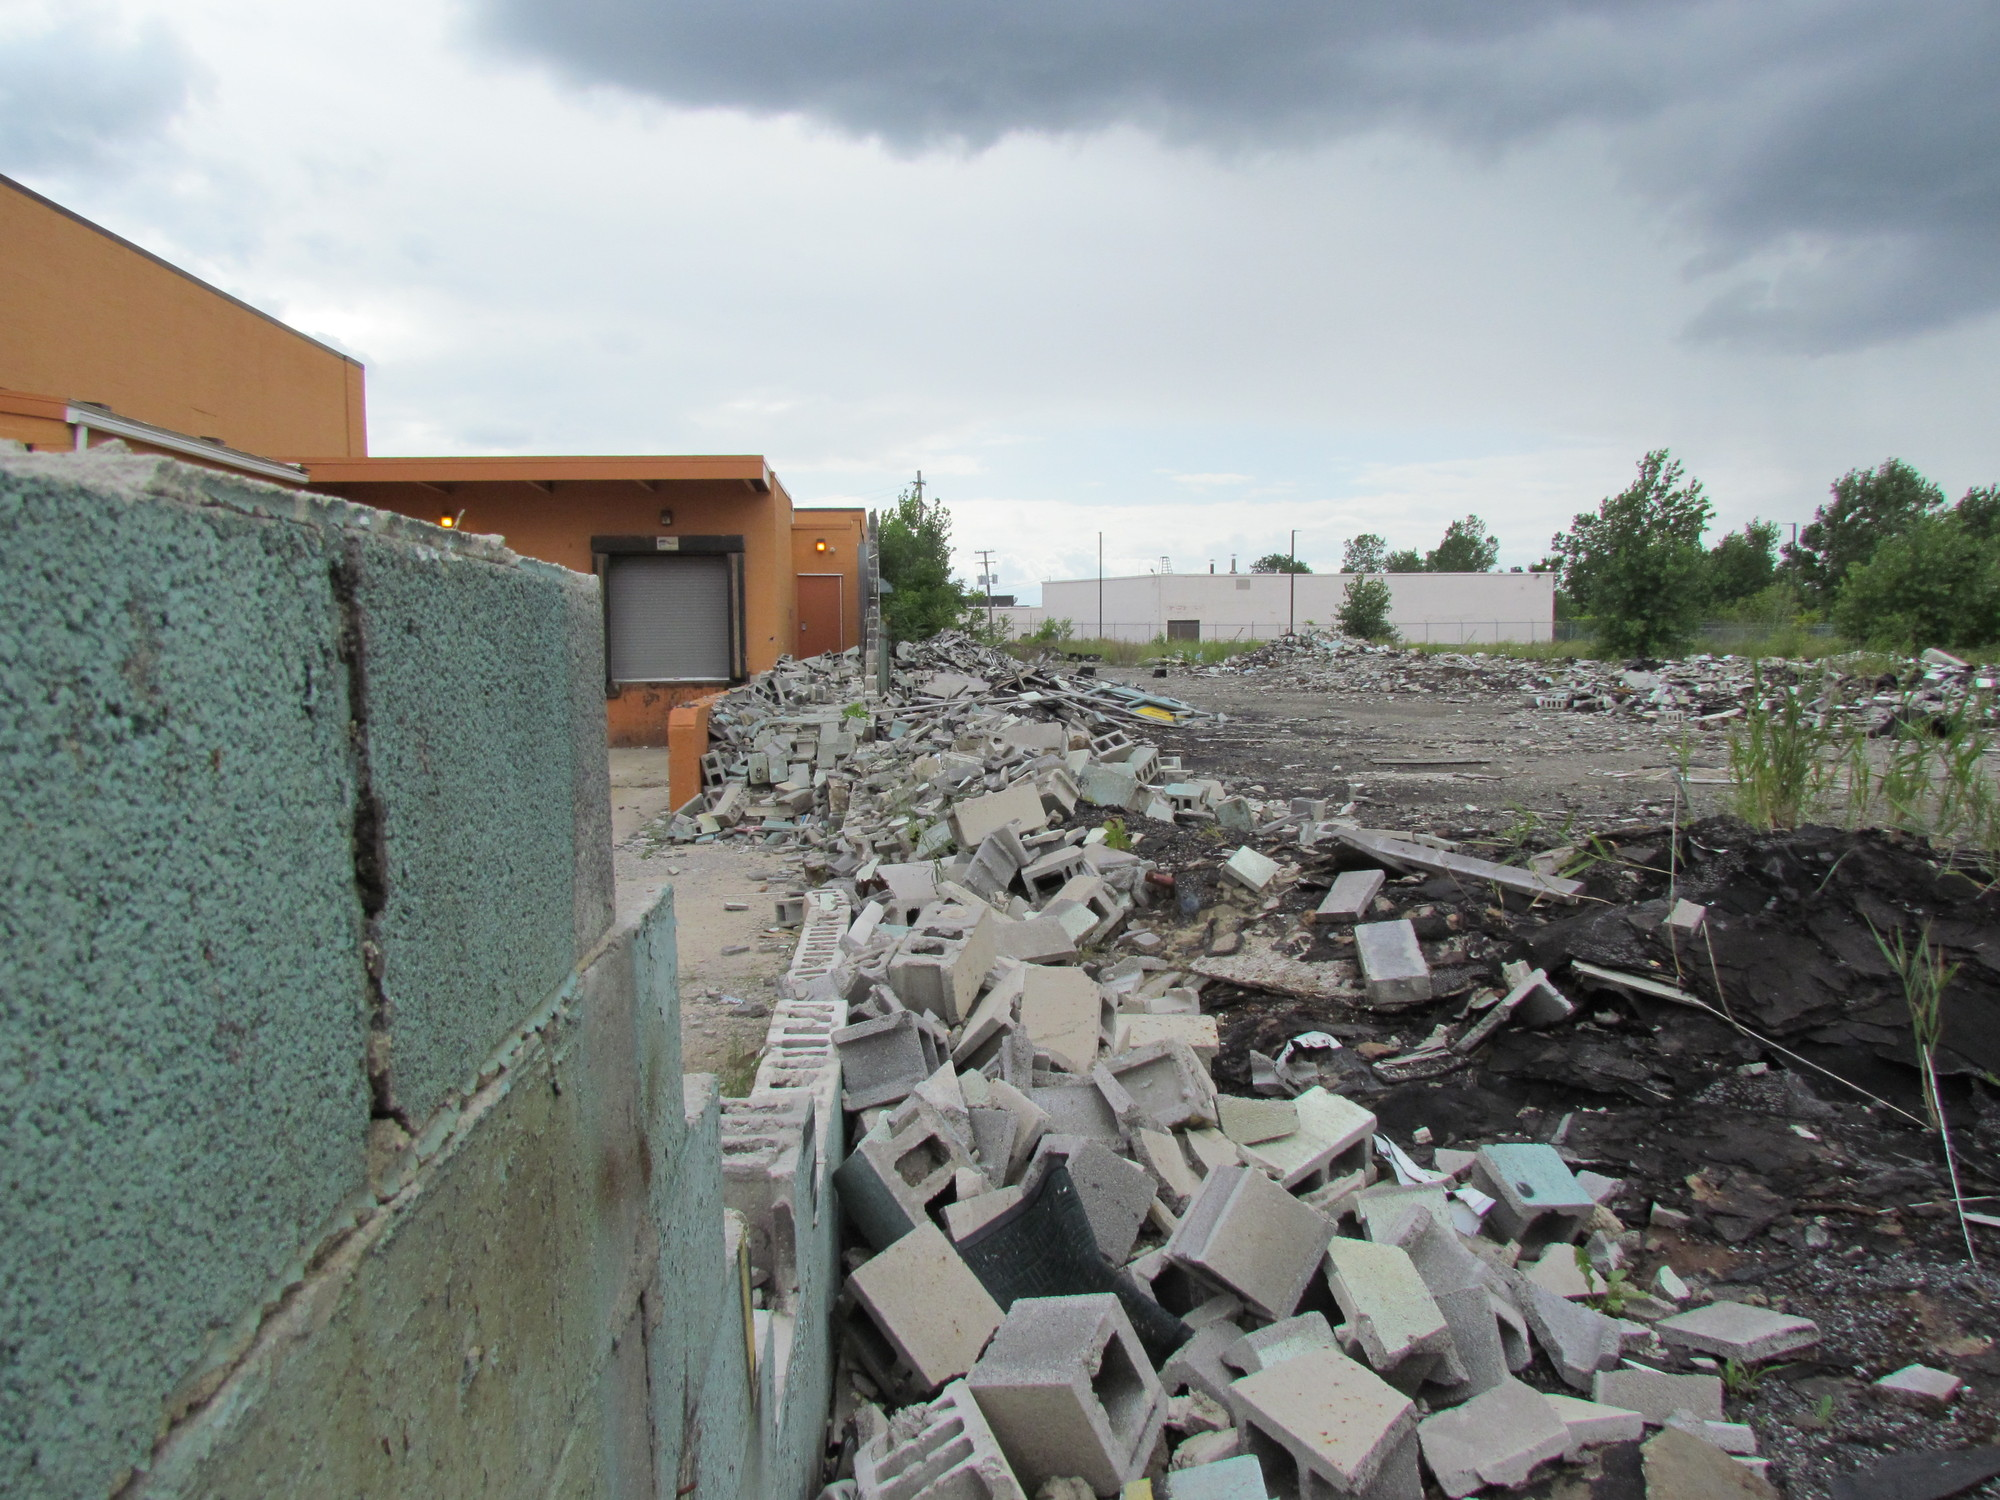 One of the demolition sites listed on the Recycle Detroit website. Image © Christopher Siminski